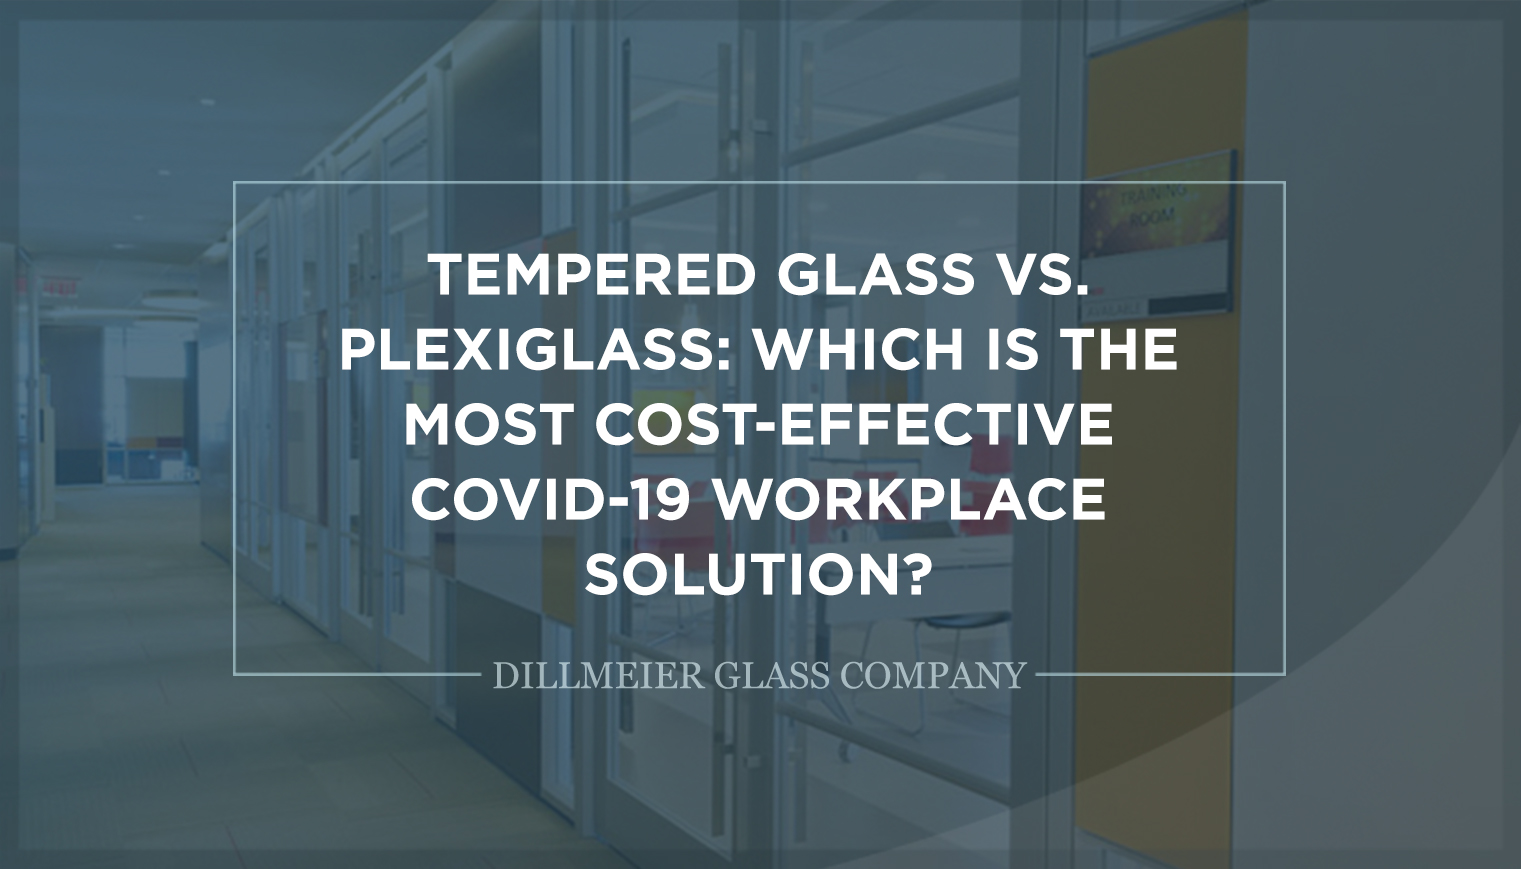 Tempered Glass vs. Plexiglass: Which Is the Most Cost-Effective COVID-19 Workplace Solution?